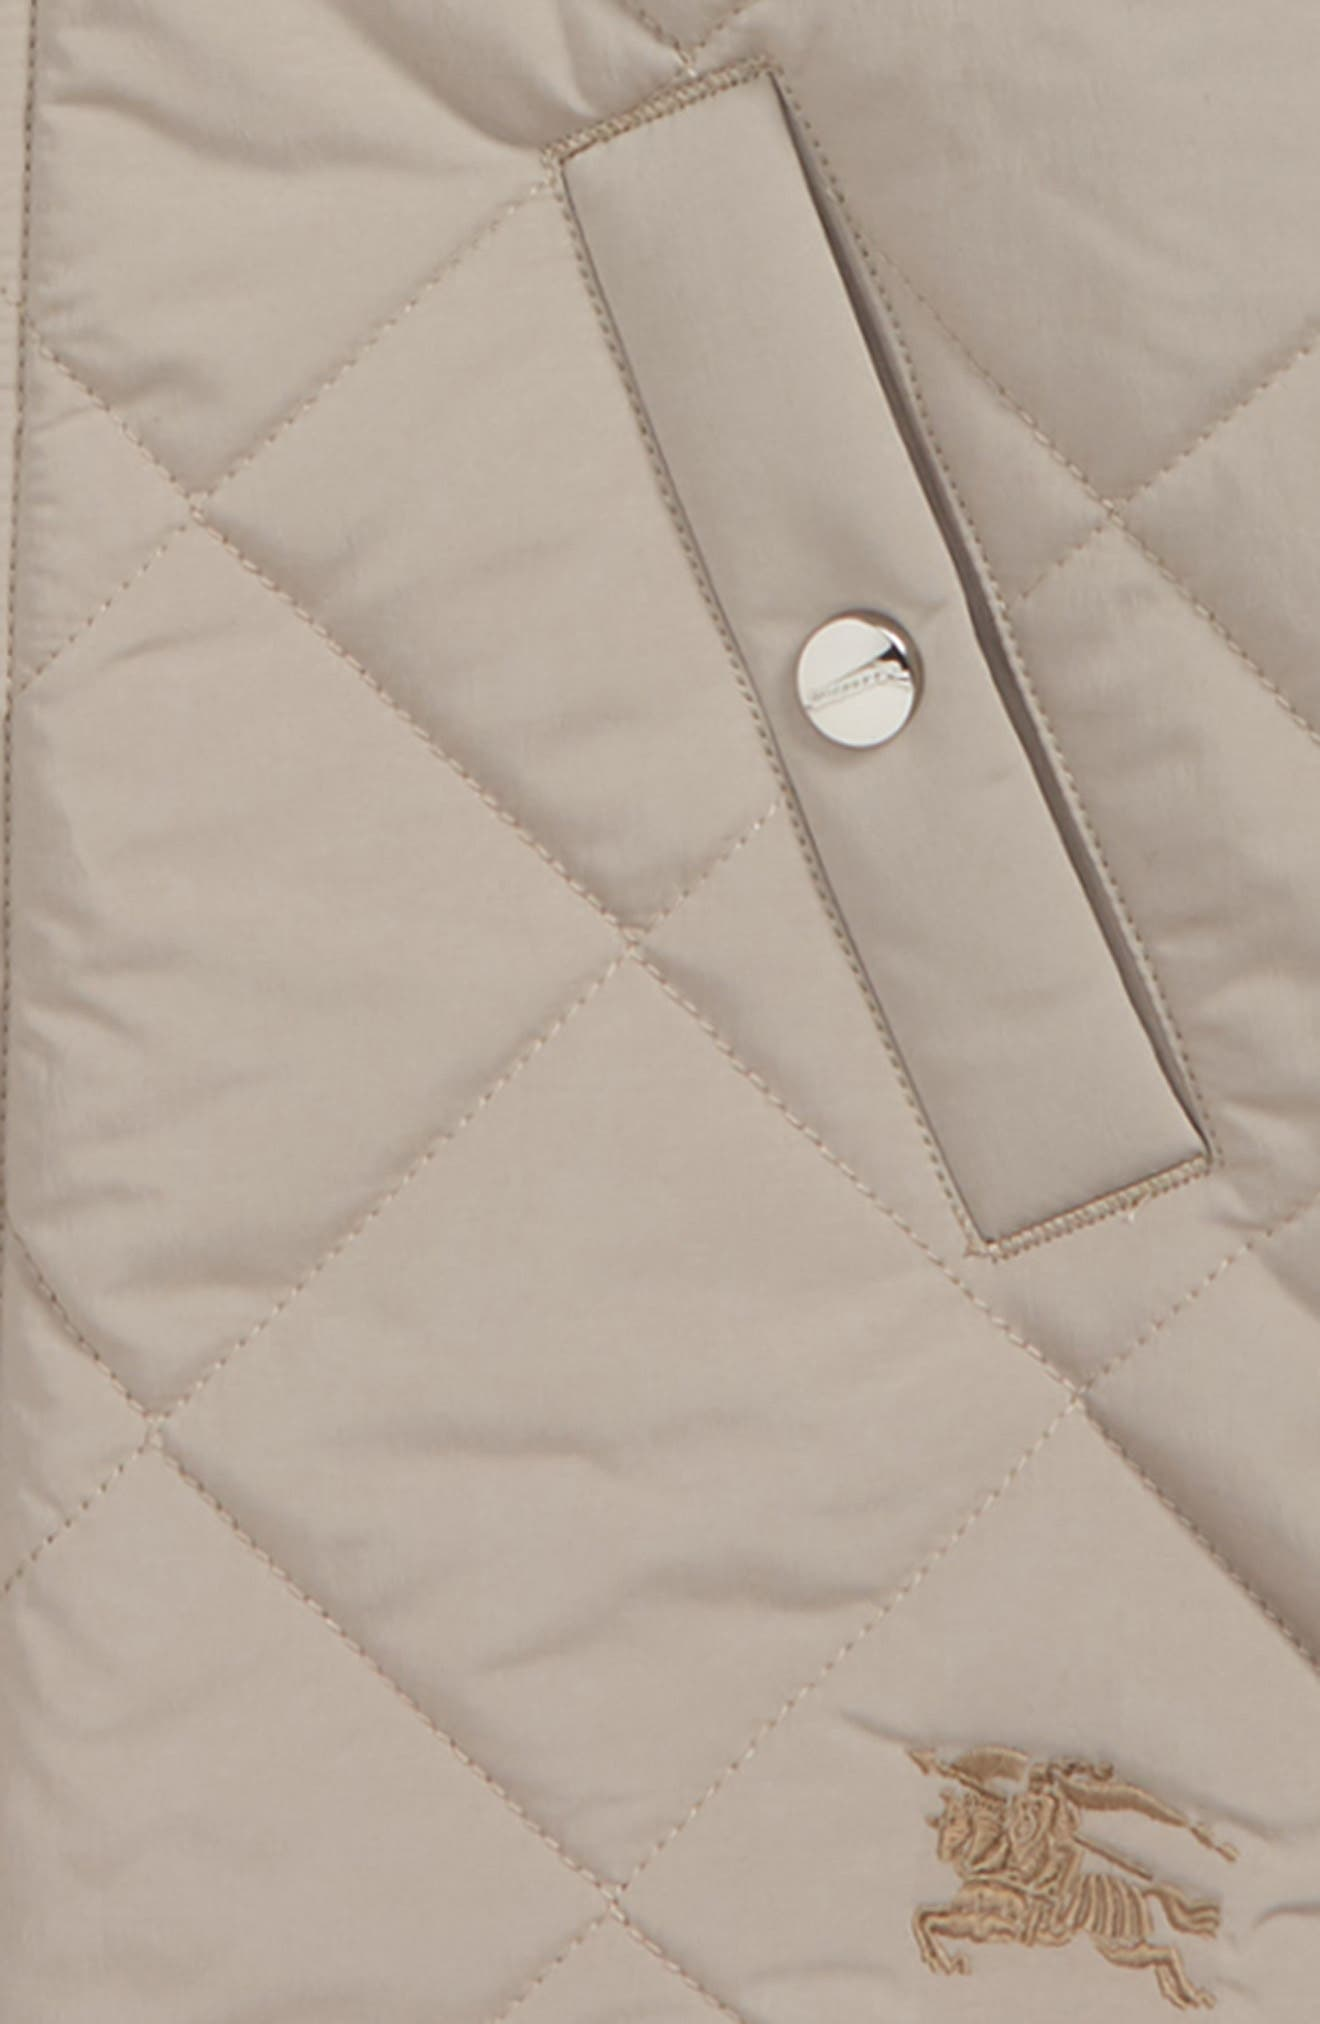 Mila Quilted Hooded Jacket,                             Alternate thumbnail 2, color,                             250